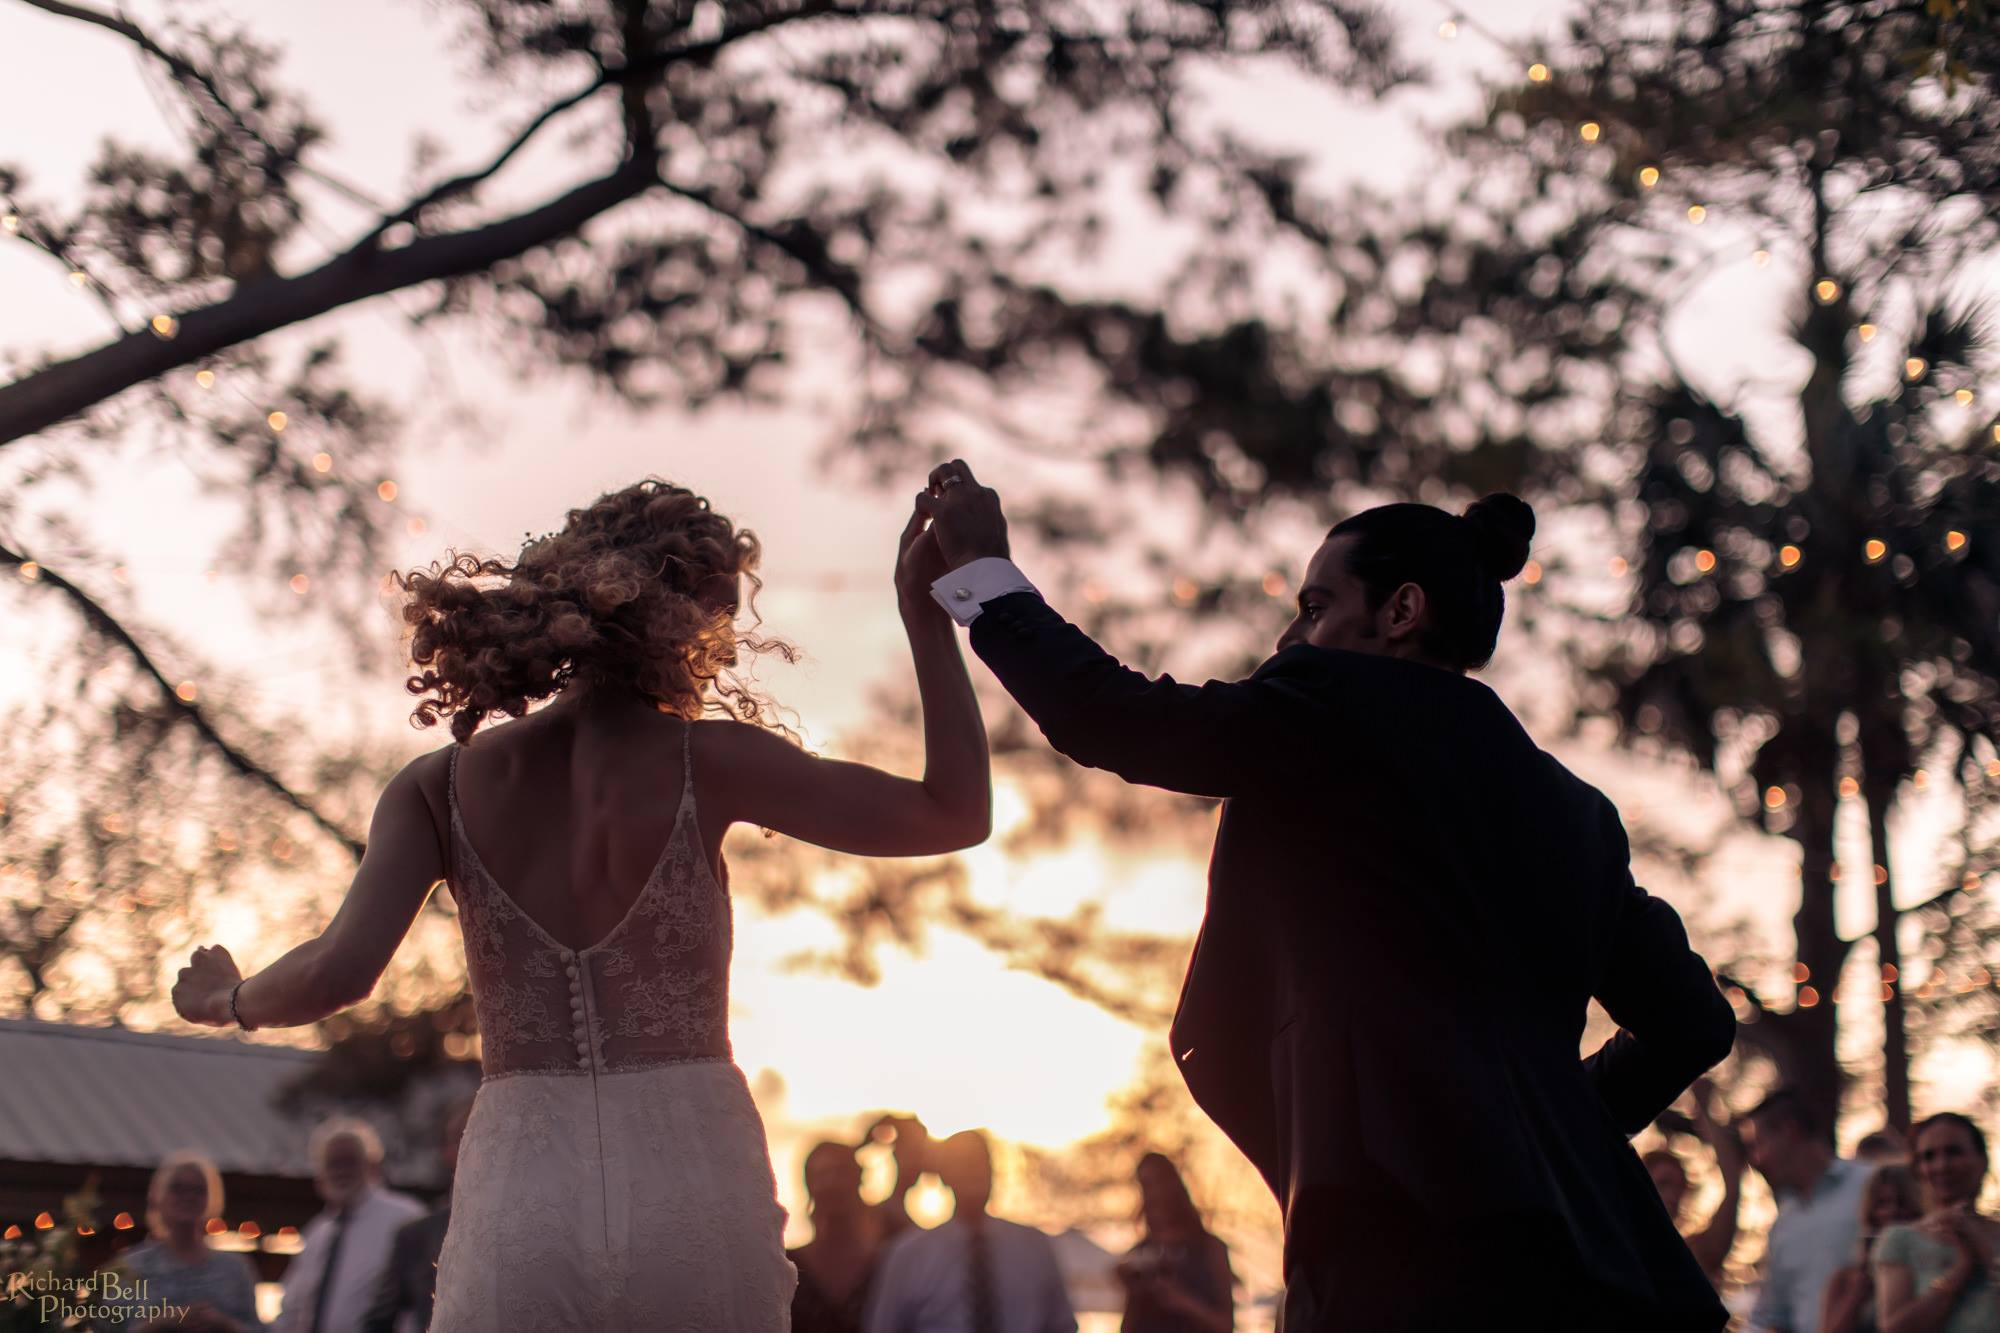 Your First Dance could be simple or intricate, but it should be special just for you two.